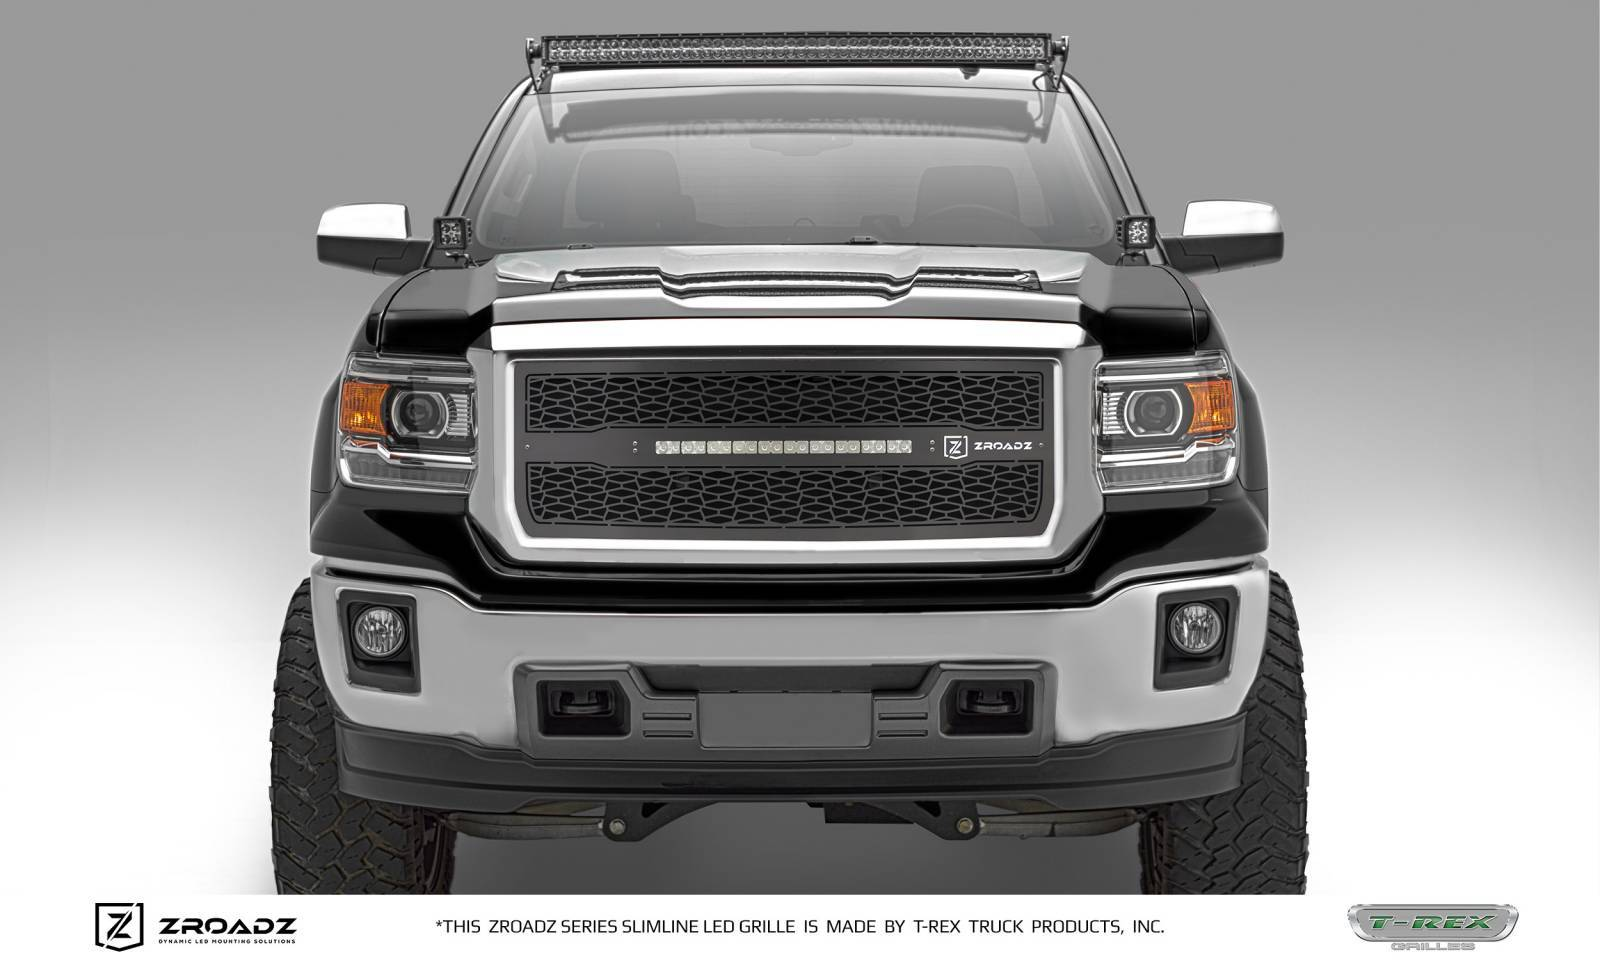 M143867107 t rex gmc sierra 1500 zroadz series main insert grille w 1988 GMC Sierra 1500 at alyssarenee.co